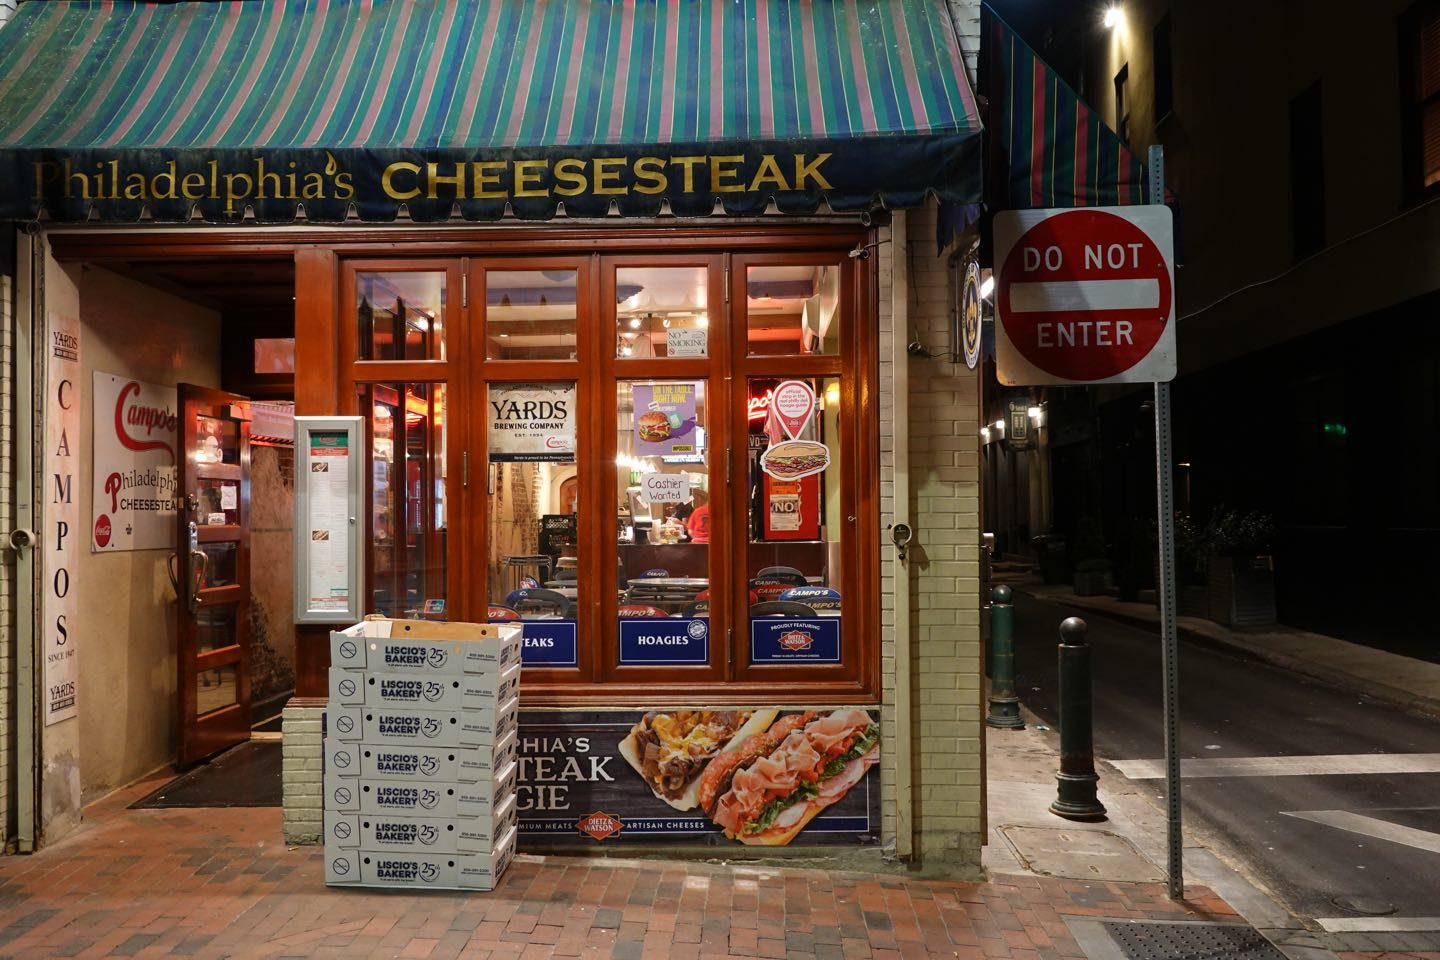 Local specialties of Philadelphia: The Cheesesteak.